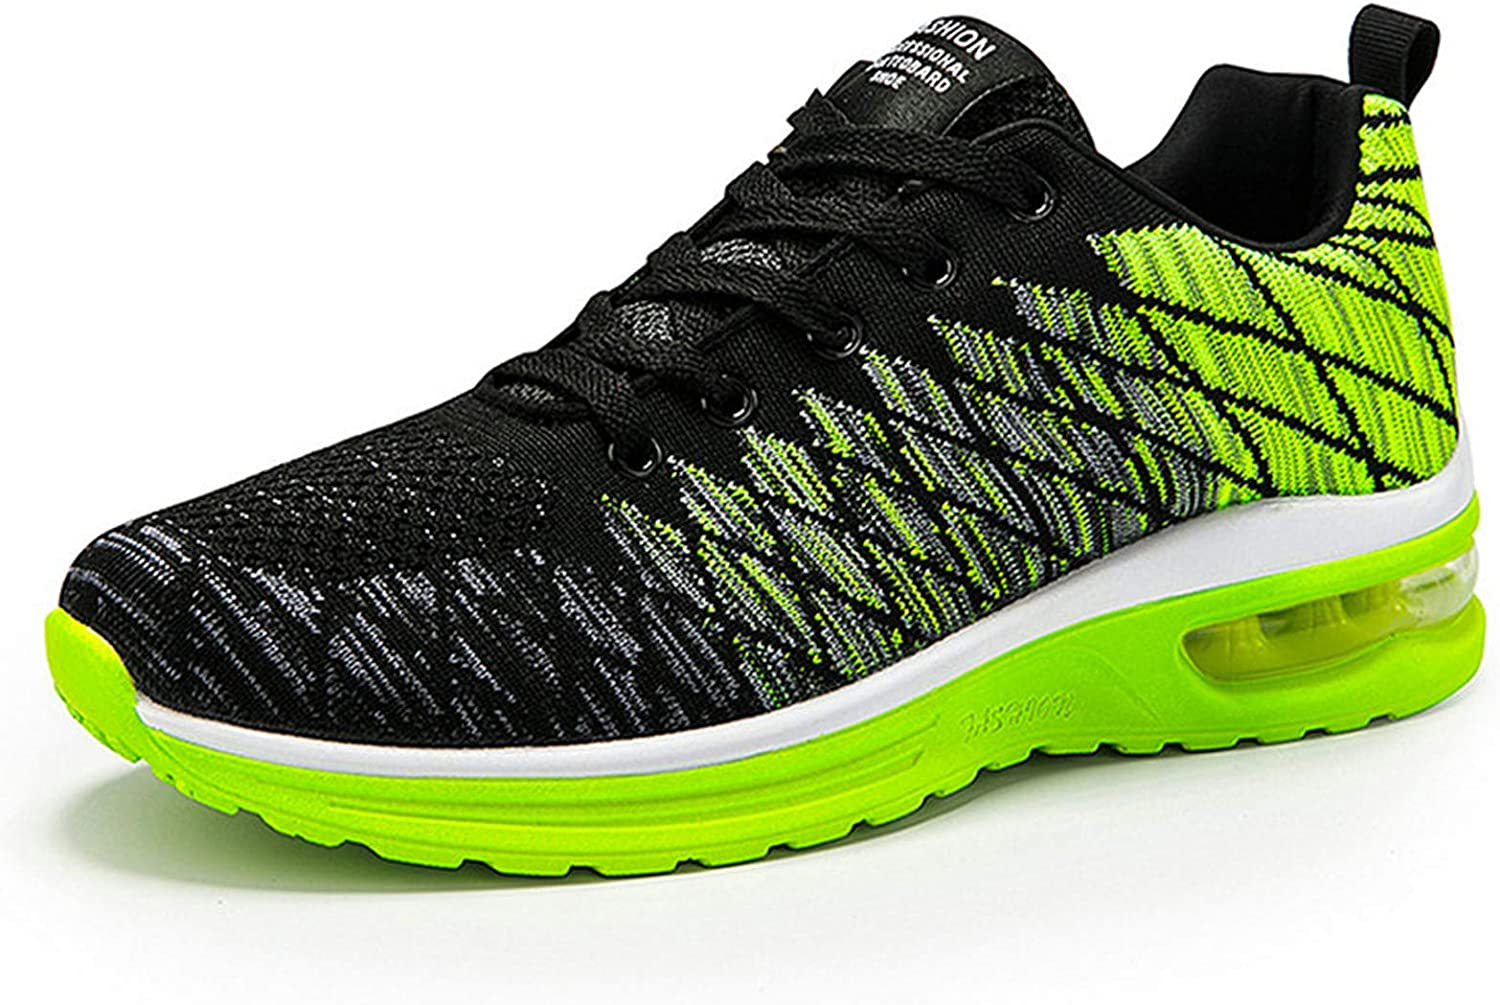 TOPSSCTR Running Shoes for Men Womens Sneakers Breathable Tennis Shoes Comfy Air Cushion Sneakers